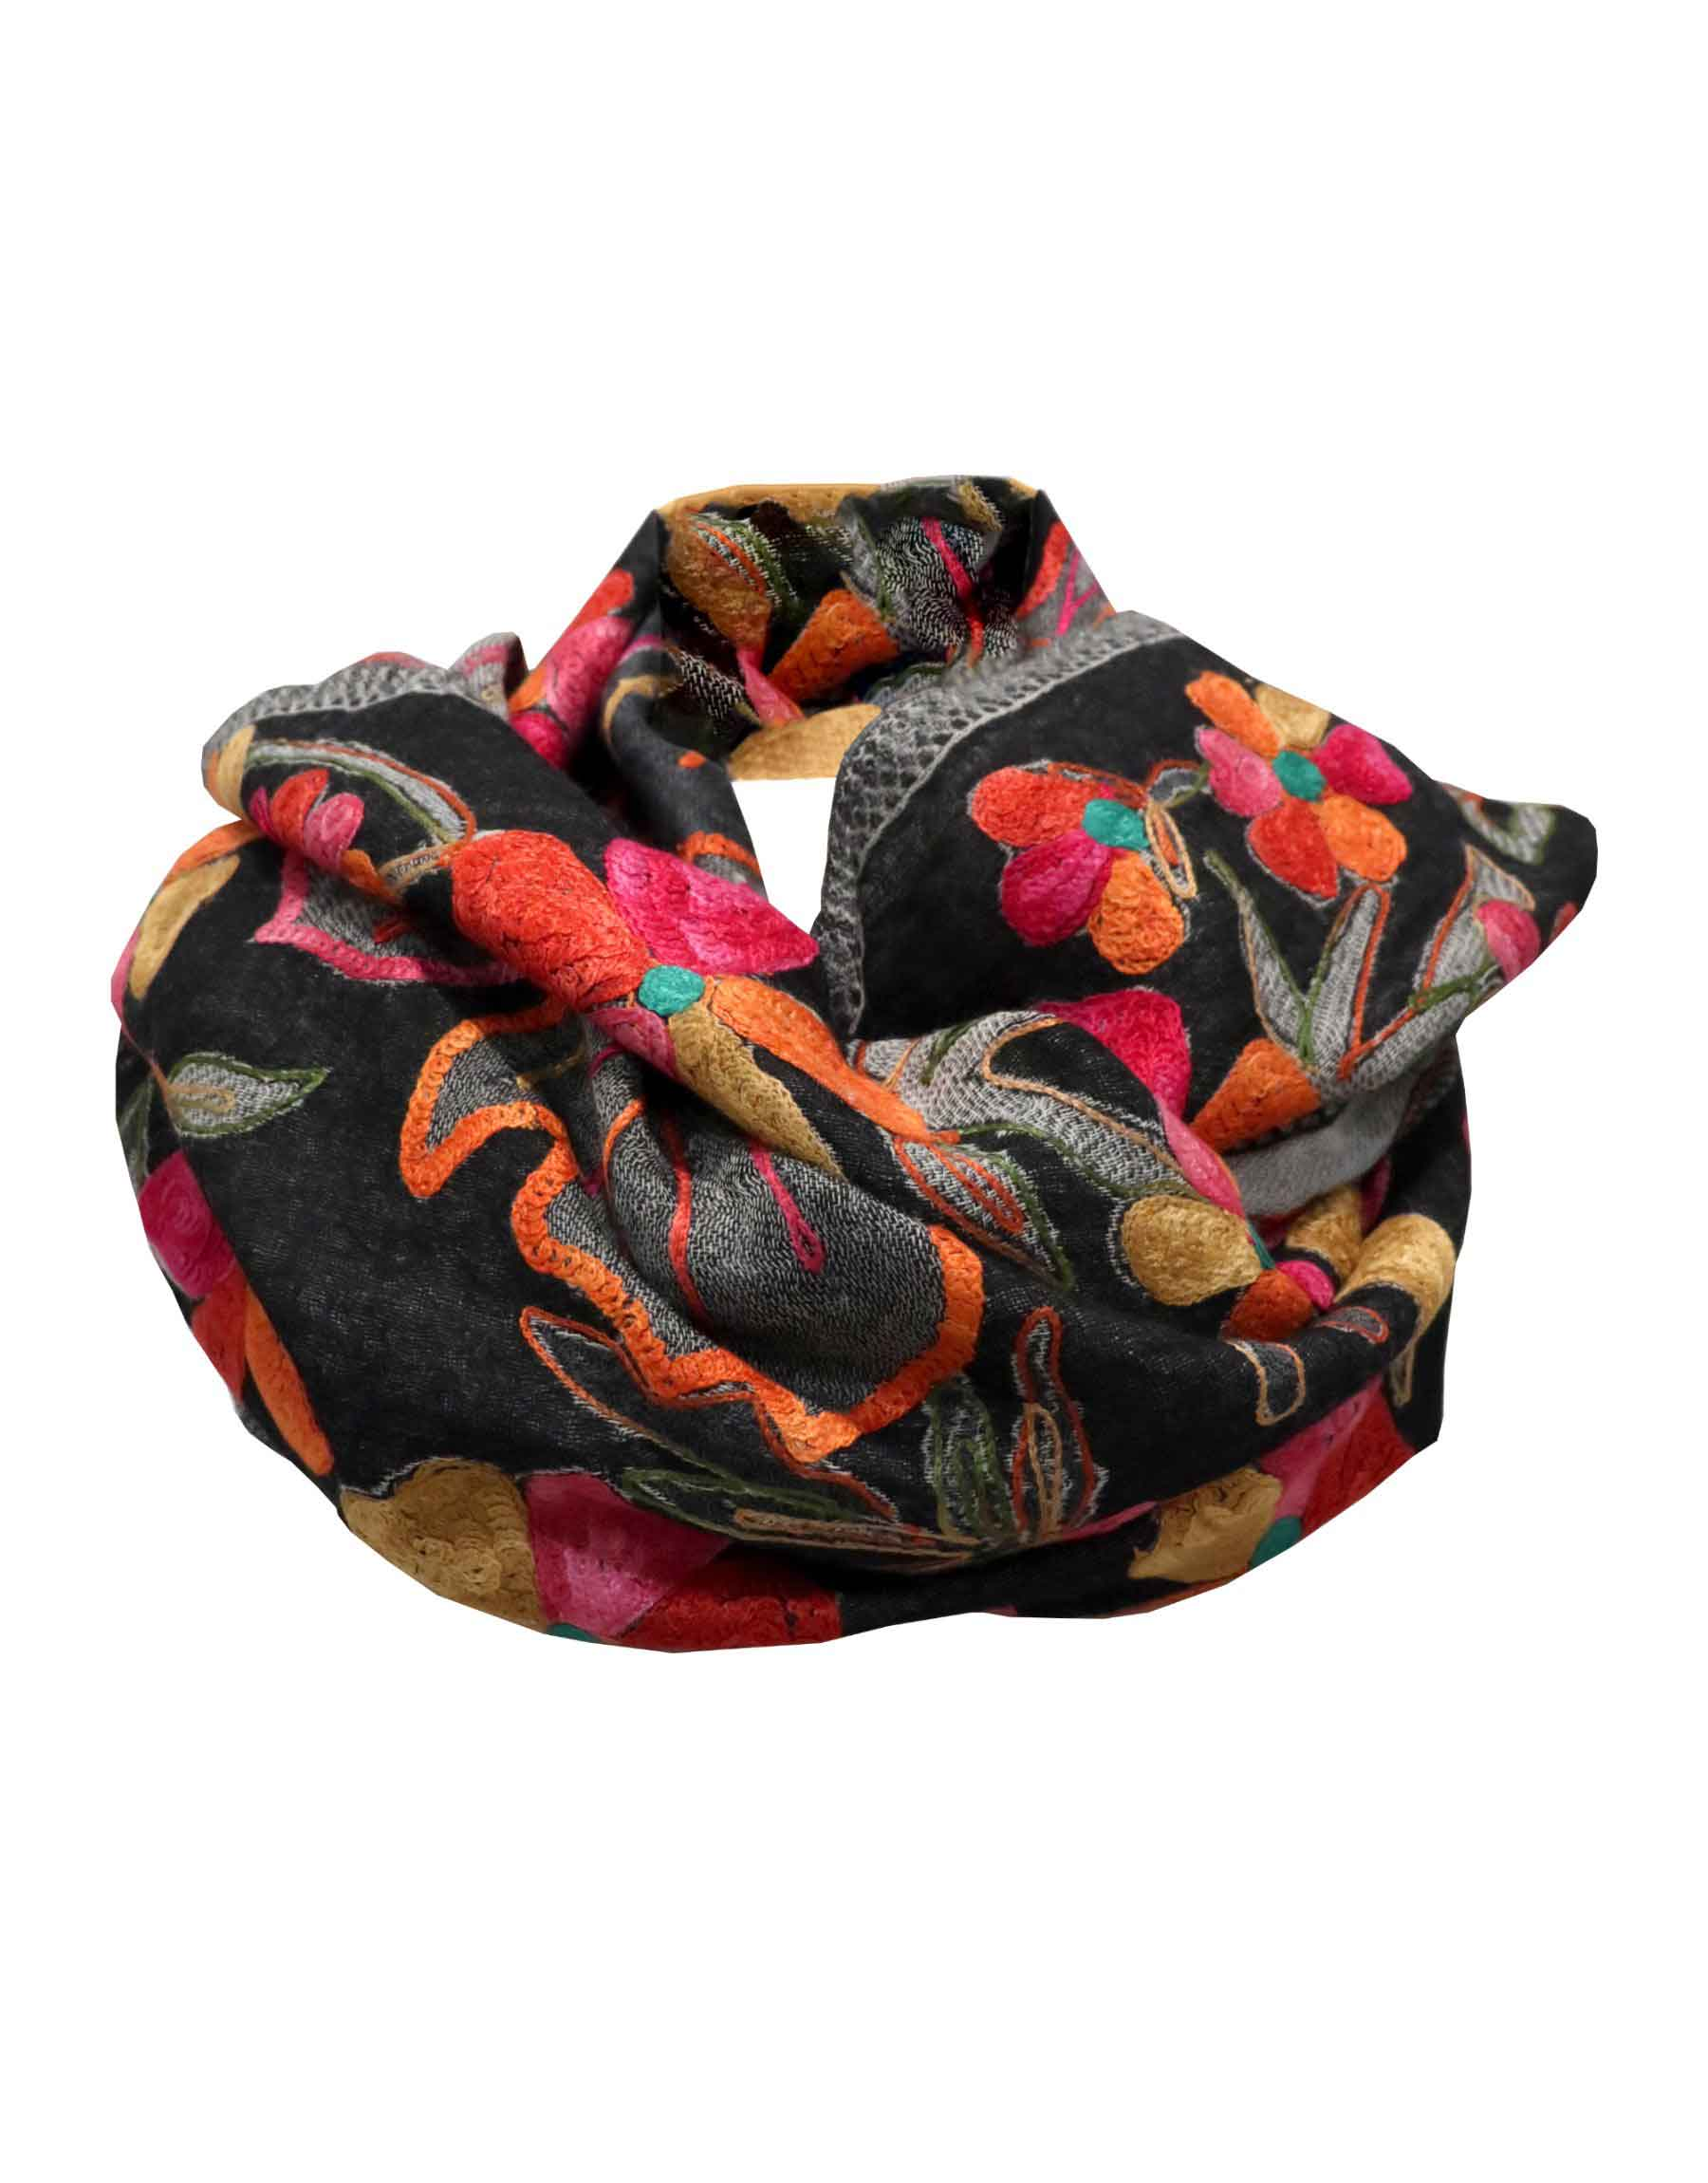 Adhira Hand-Embroidered Wool Stole